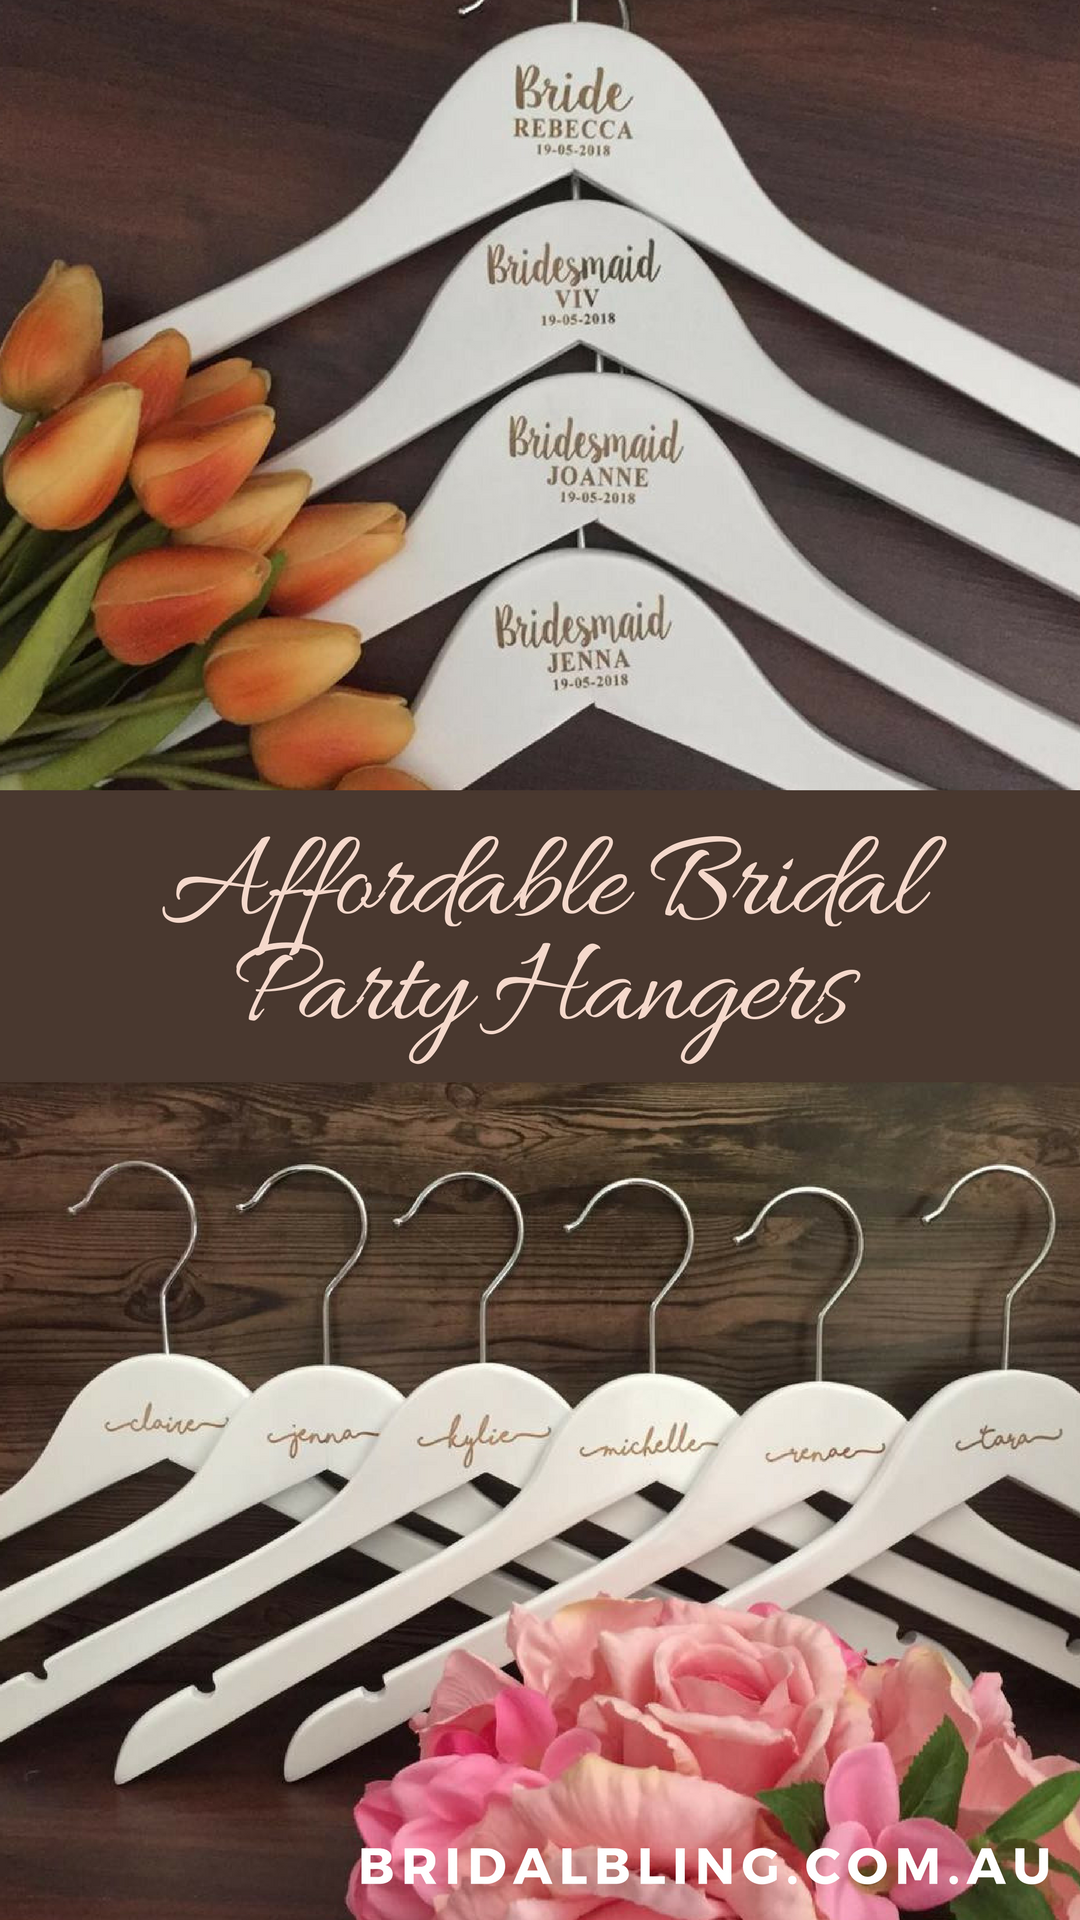 Personalised Bridal Party Hangers Engraved Wedding Affordable